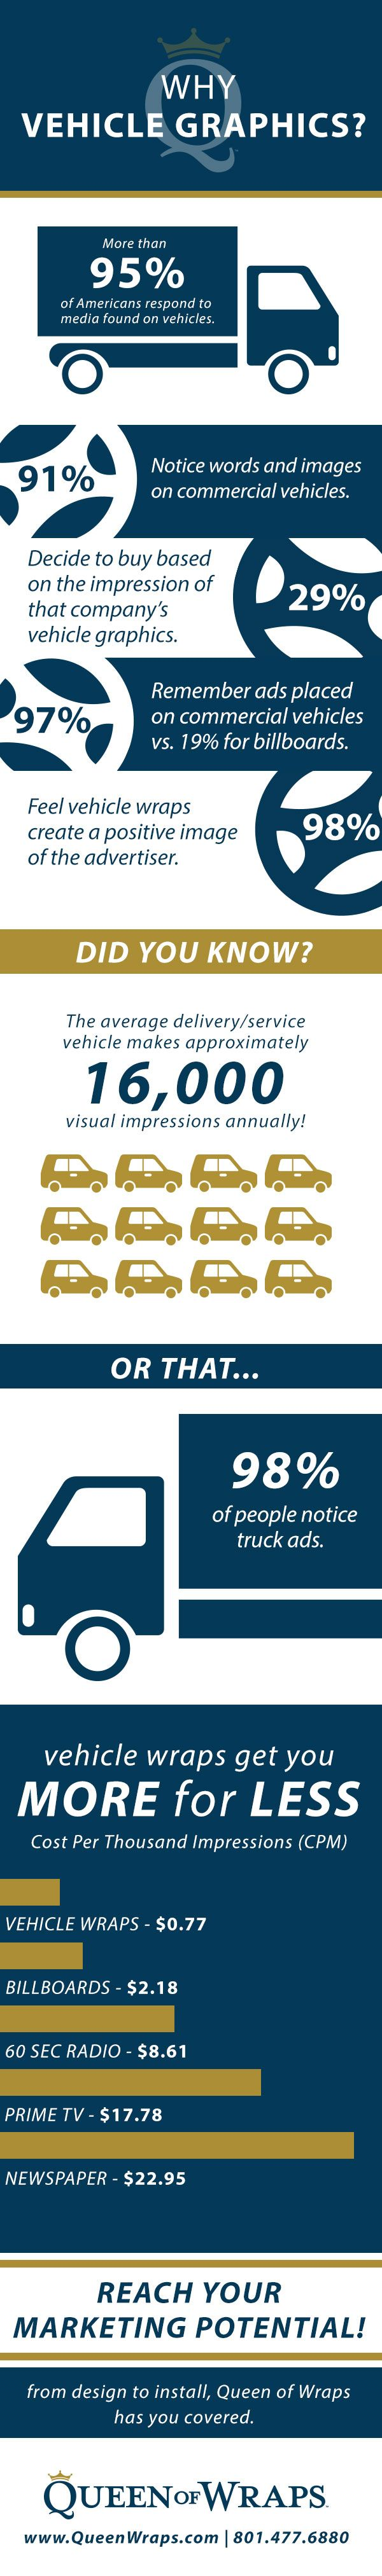 http://www.queenofwraps.com/advertising-vehicle-wraps/ See all of the reasons that having a car wrap in Utah will help benefit your business. Vehicle wraps provide the largest market coverage at the lowest CPM.